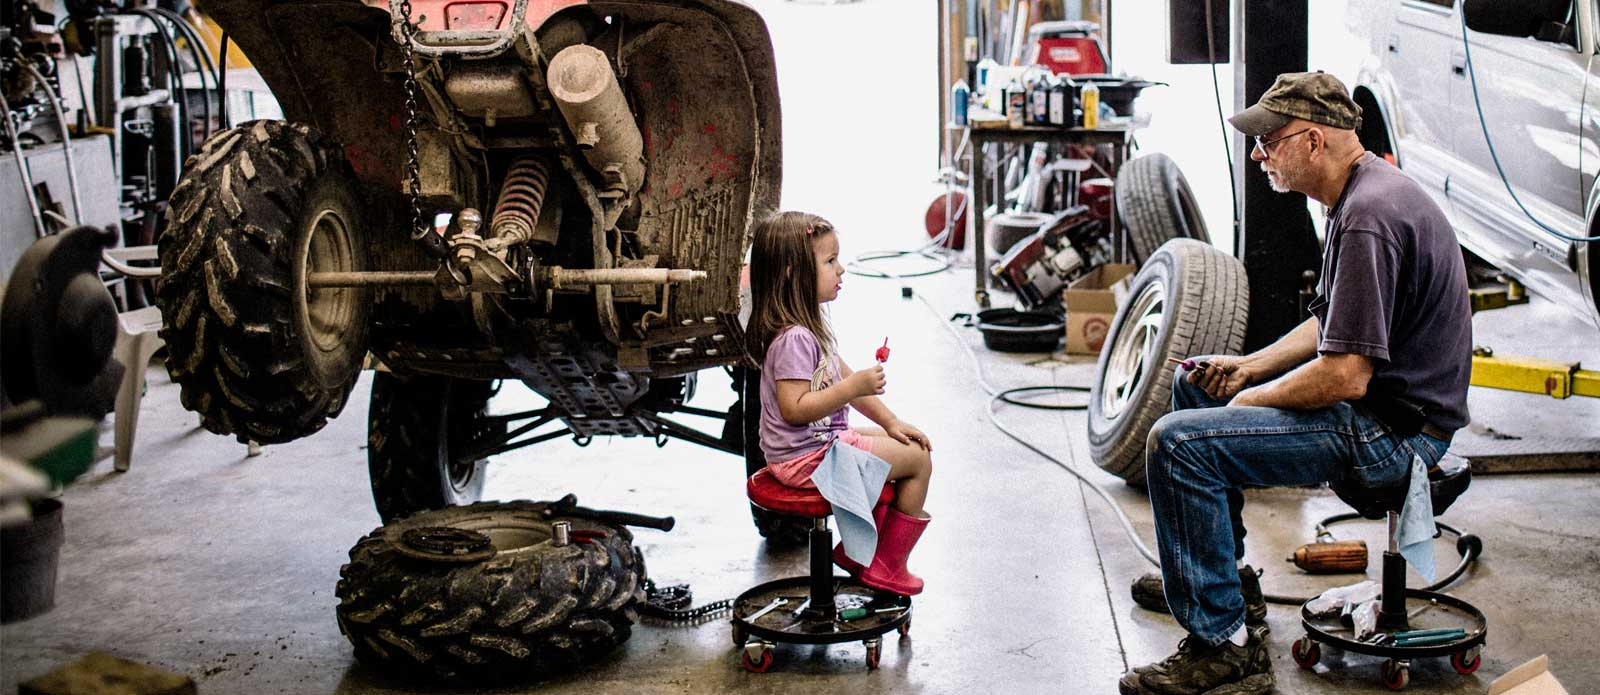 granddad-talking-girl-autorepair-shop